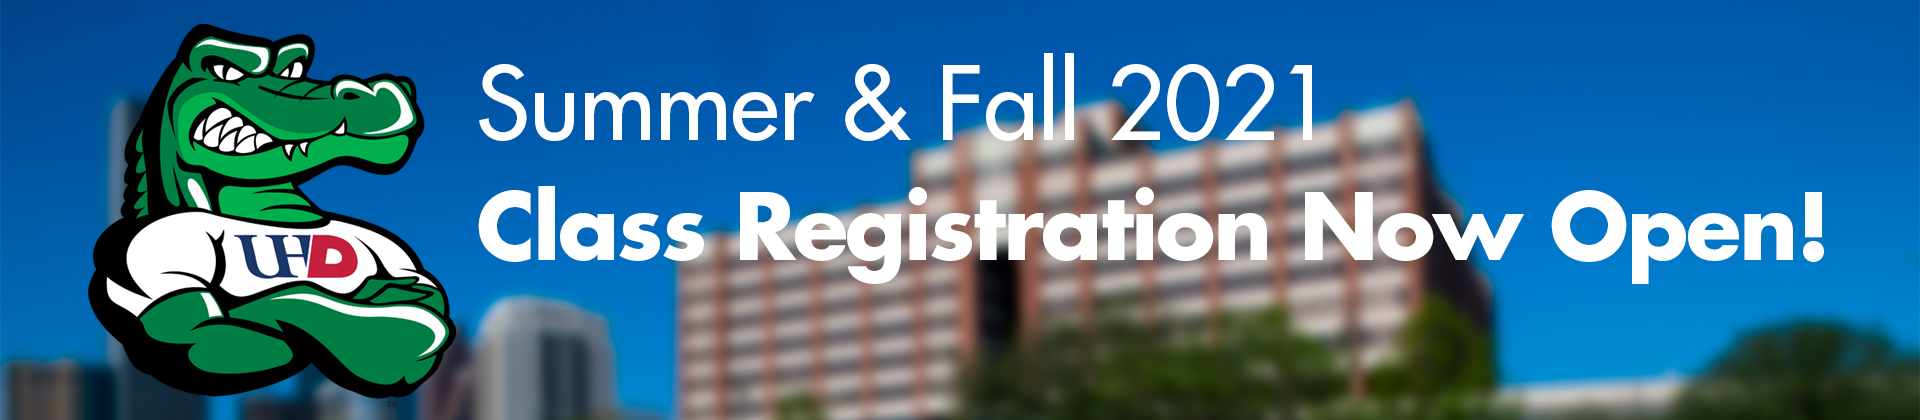 Summer and Fall 2021 Registration Now Open